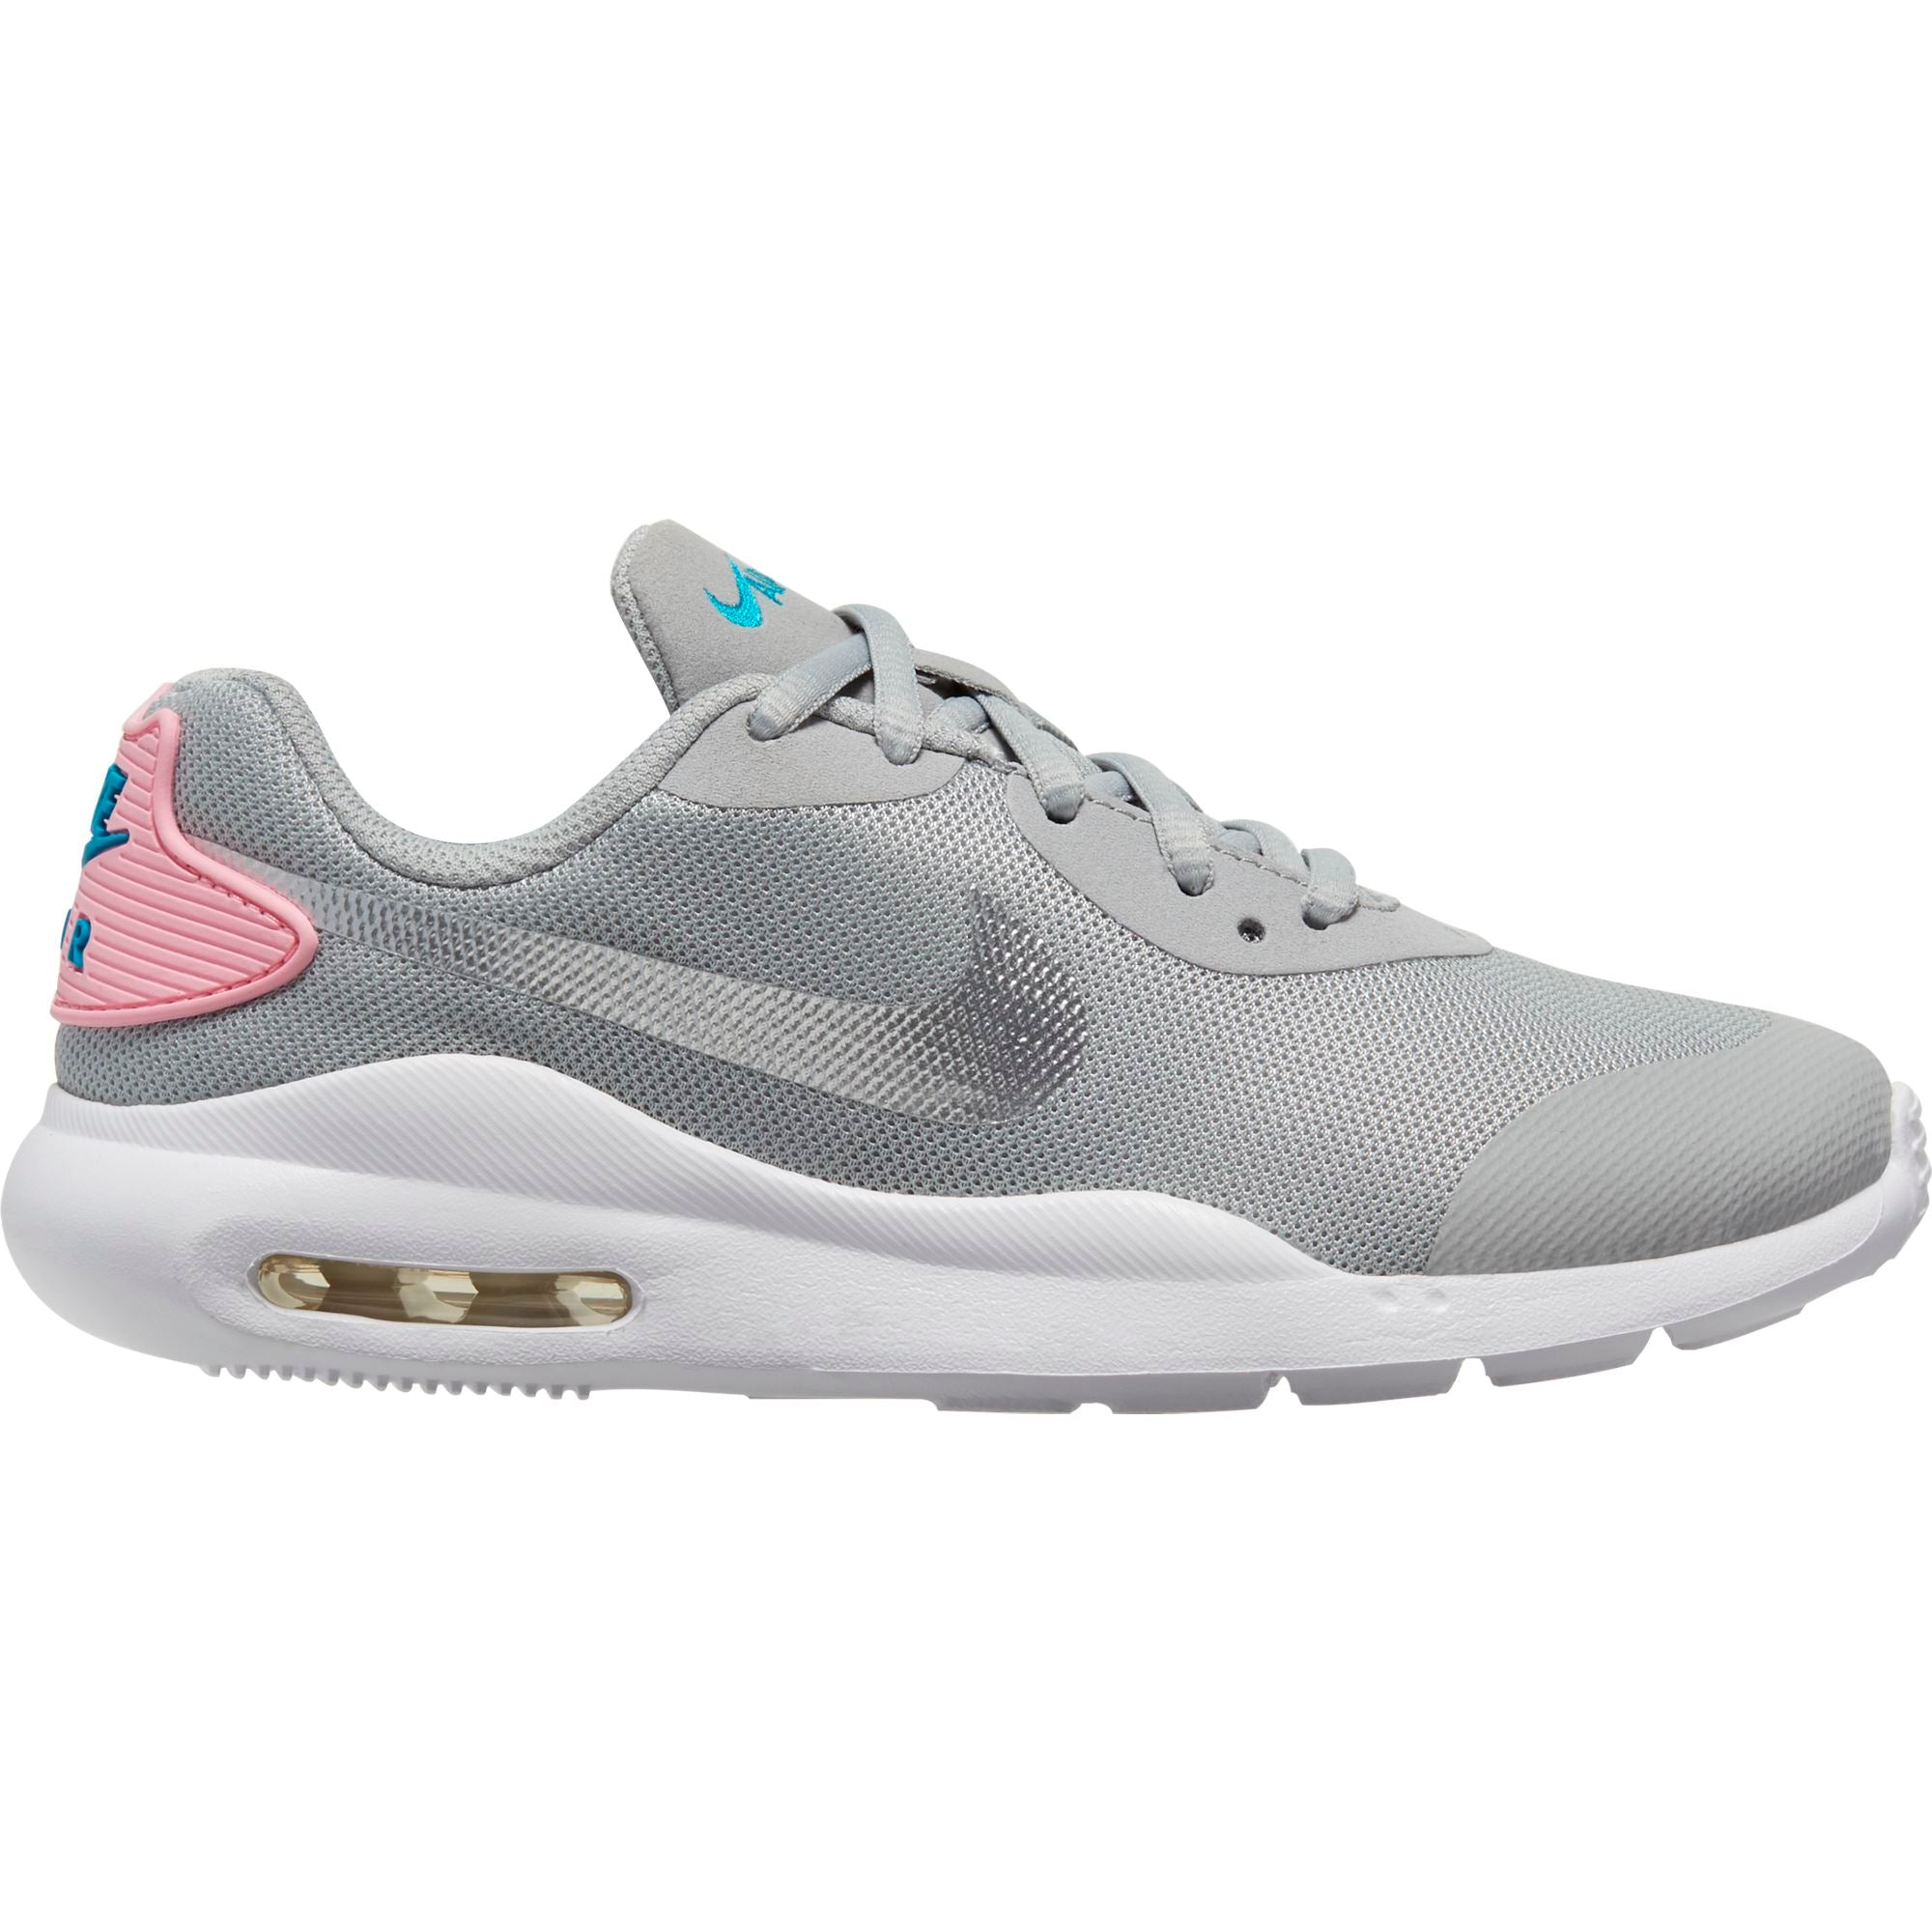 Nike Big Kids Air Max Oketo - Lt Smoke Grey/Metallic Silver-Pink SP-Footwear-Kids Nike